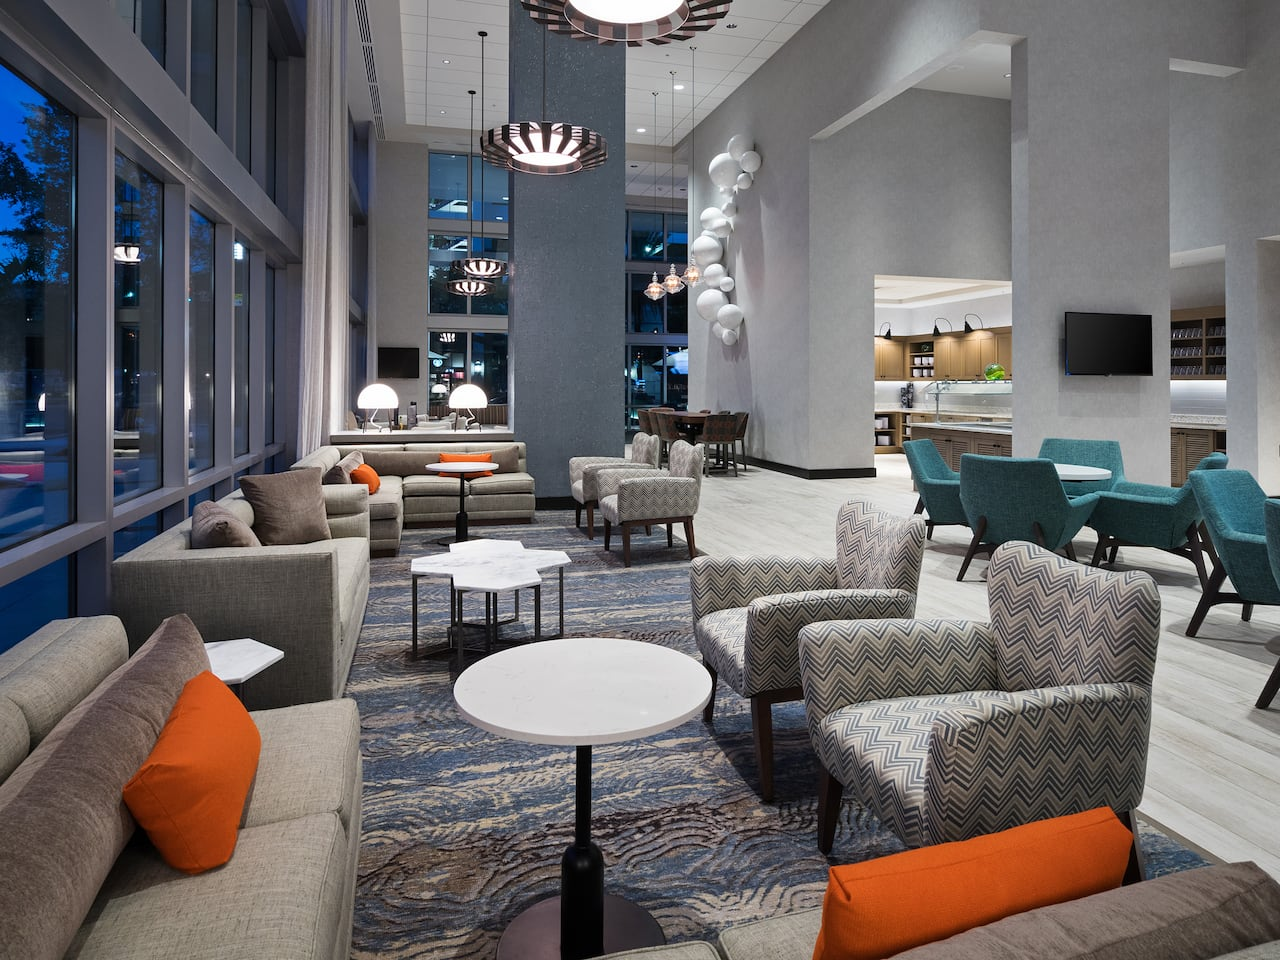 Hyatt Place St. Petersburg/Downtown Lobby Seating